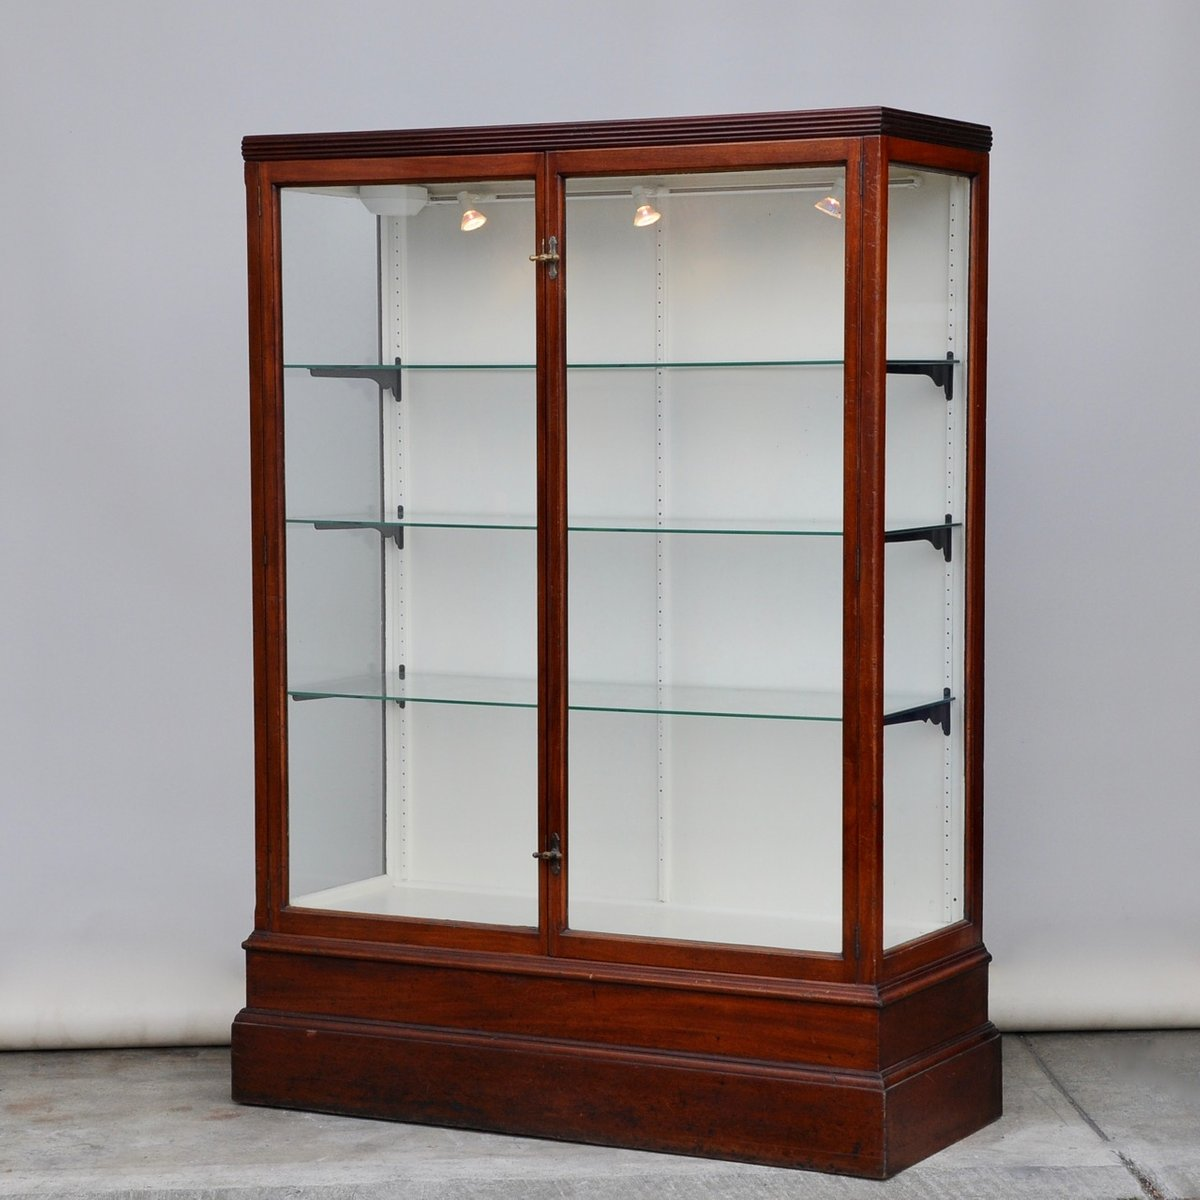 Antique Mahogany Shop Display Cabinet - Antique Mahogany Shop Display Cabinet For Sale At Pamono